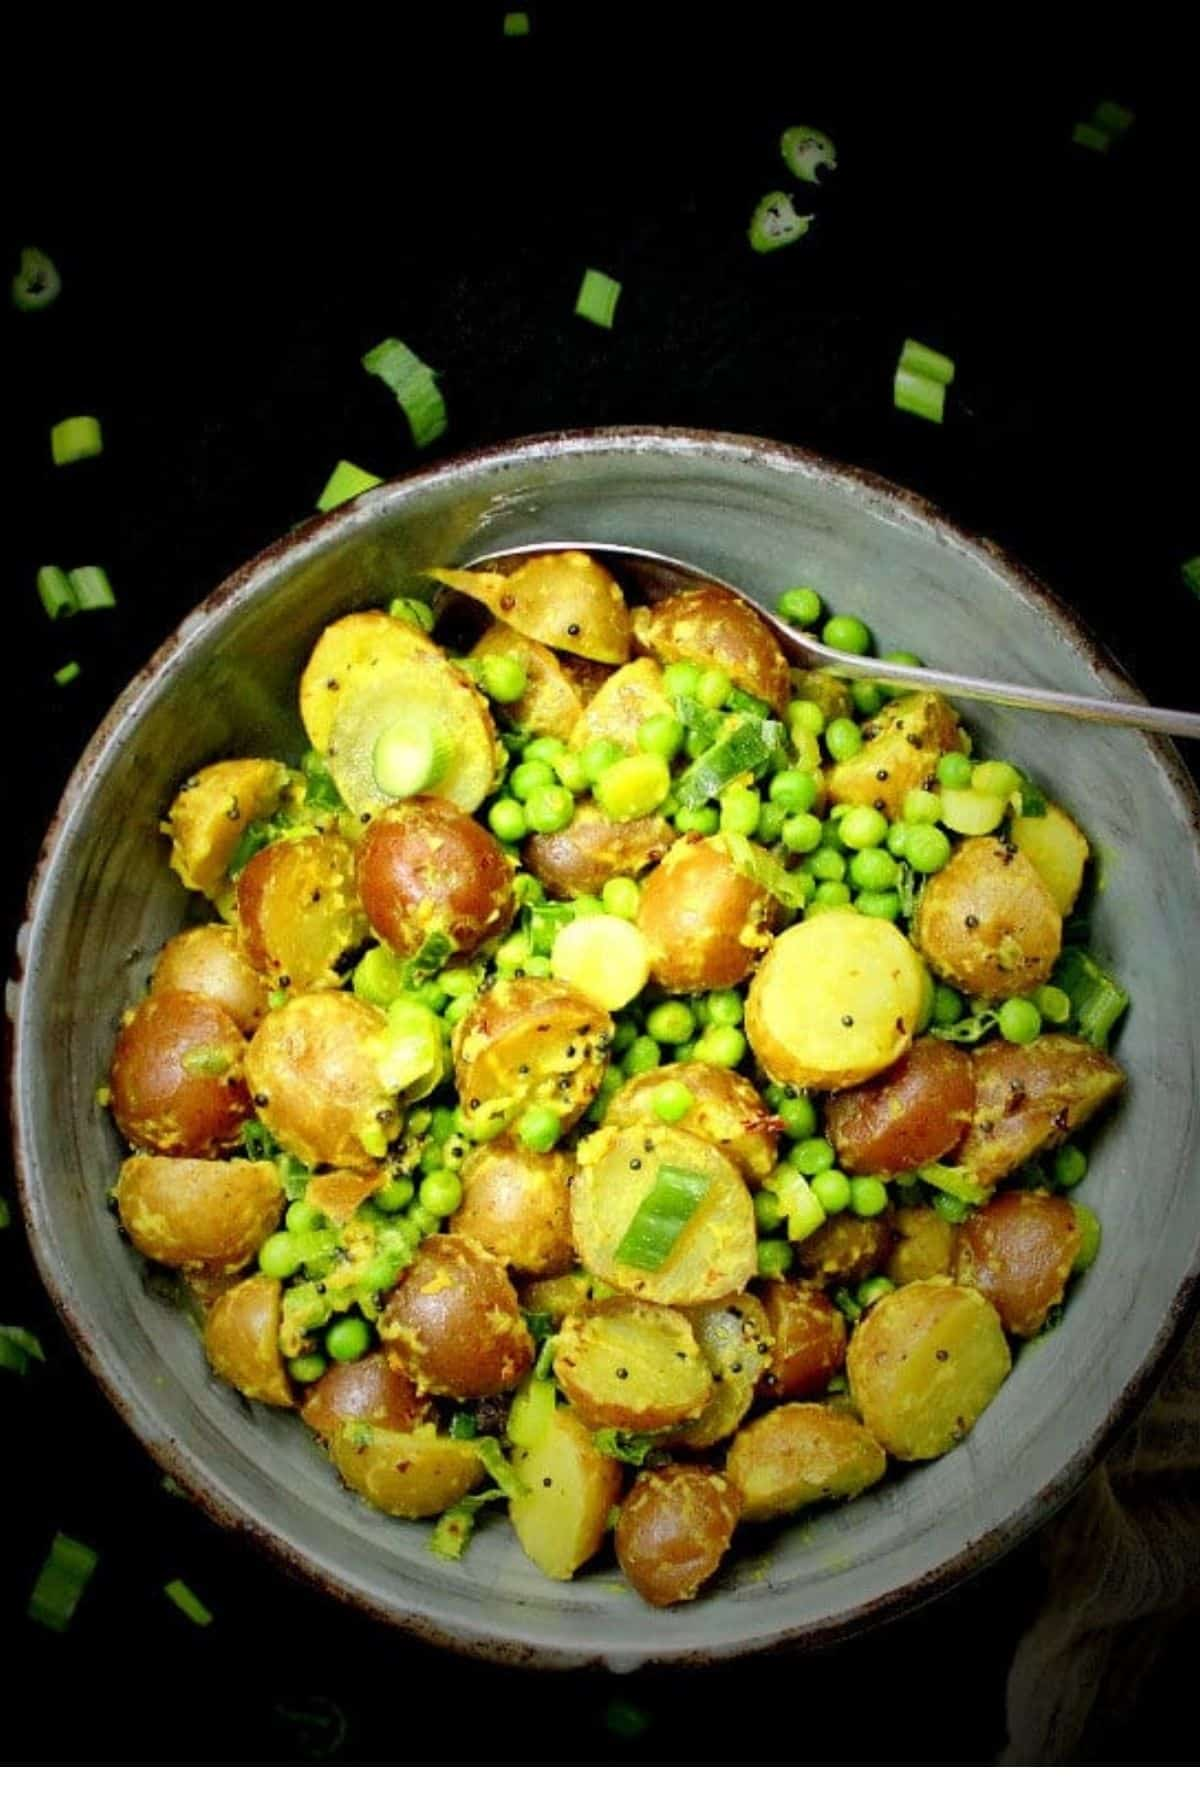 Overhead photo of vegan potato salad in a bowl on a black background.